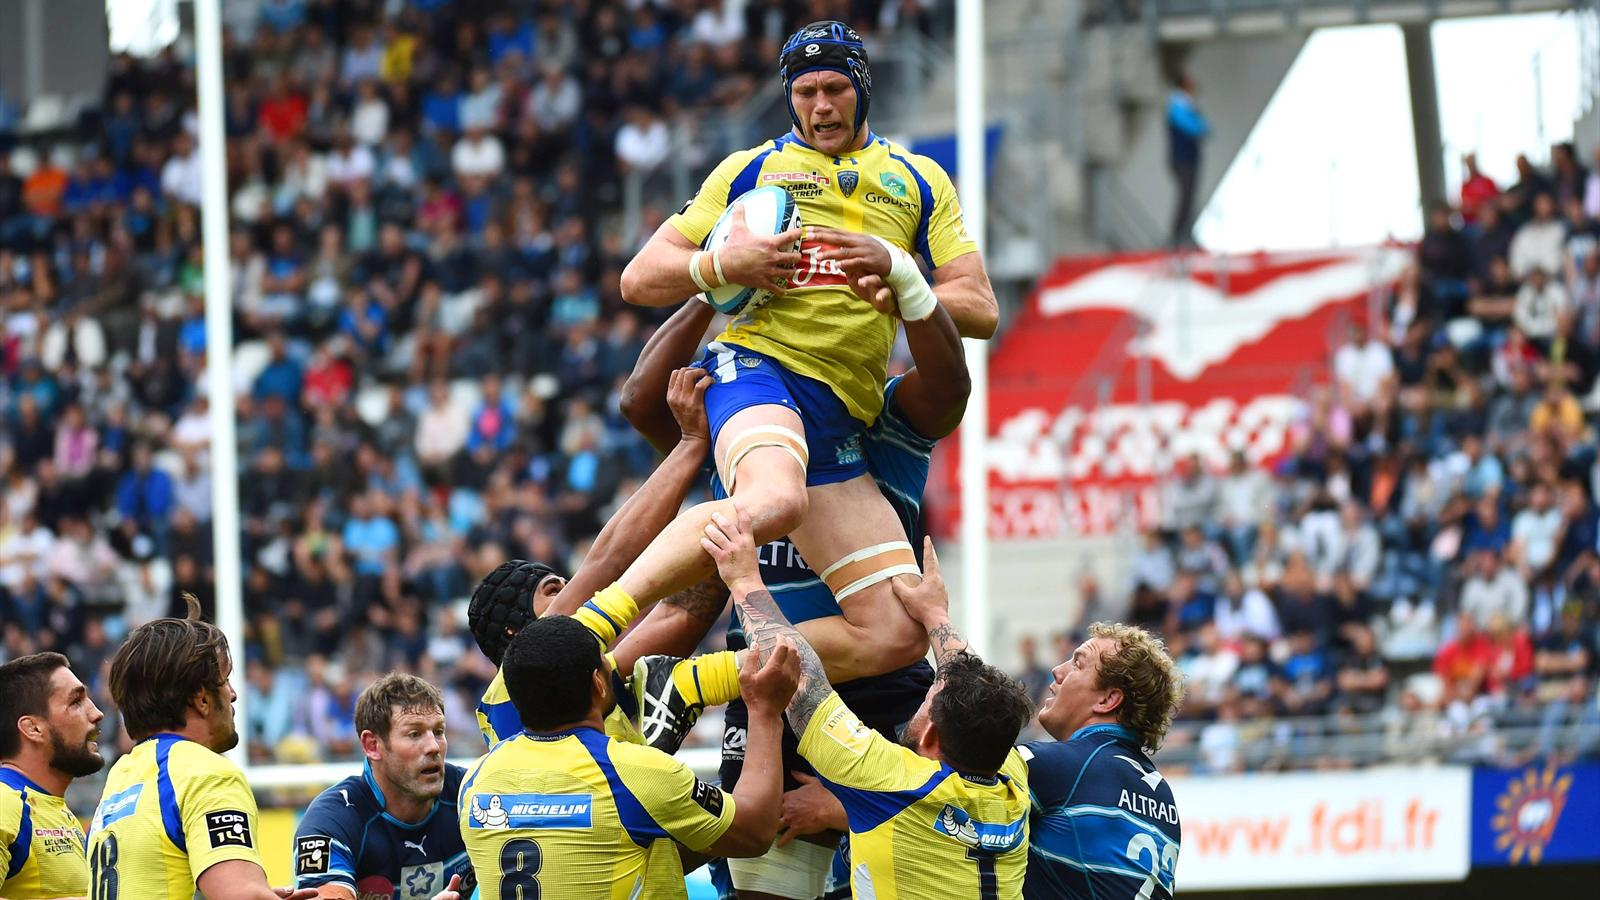 Julien Bonnaire (Clermont) face à Montpellier - 23 mai 2015